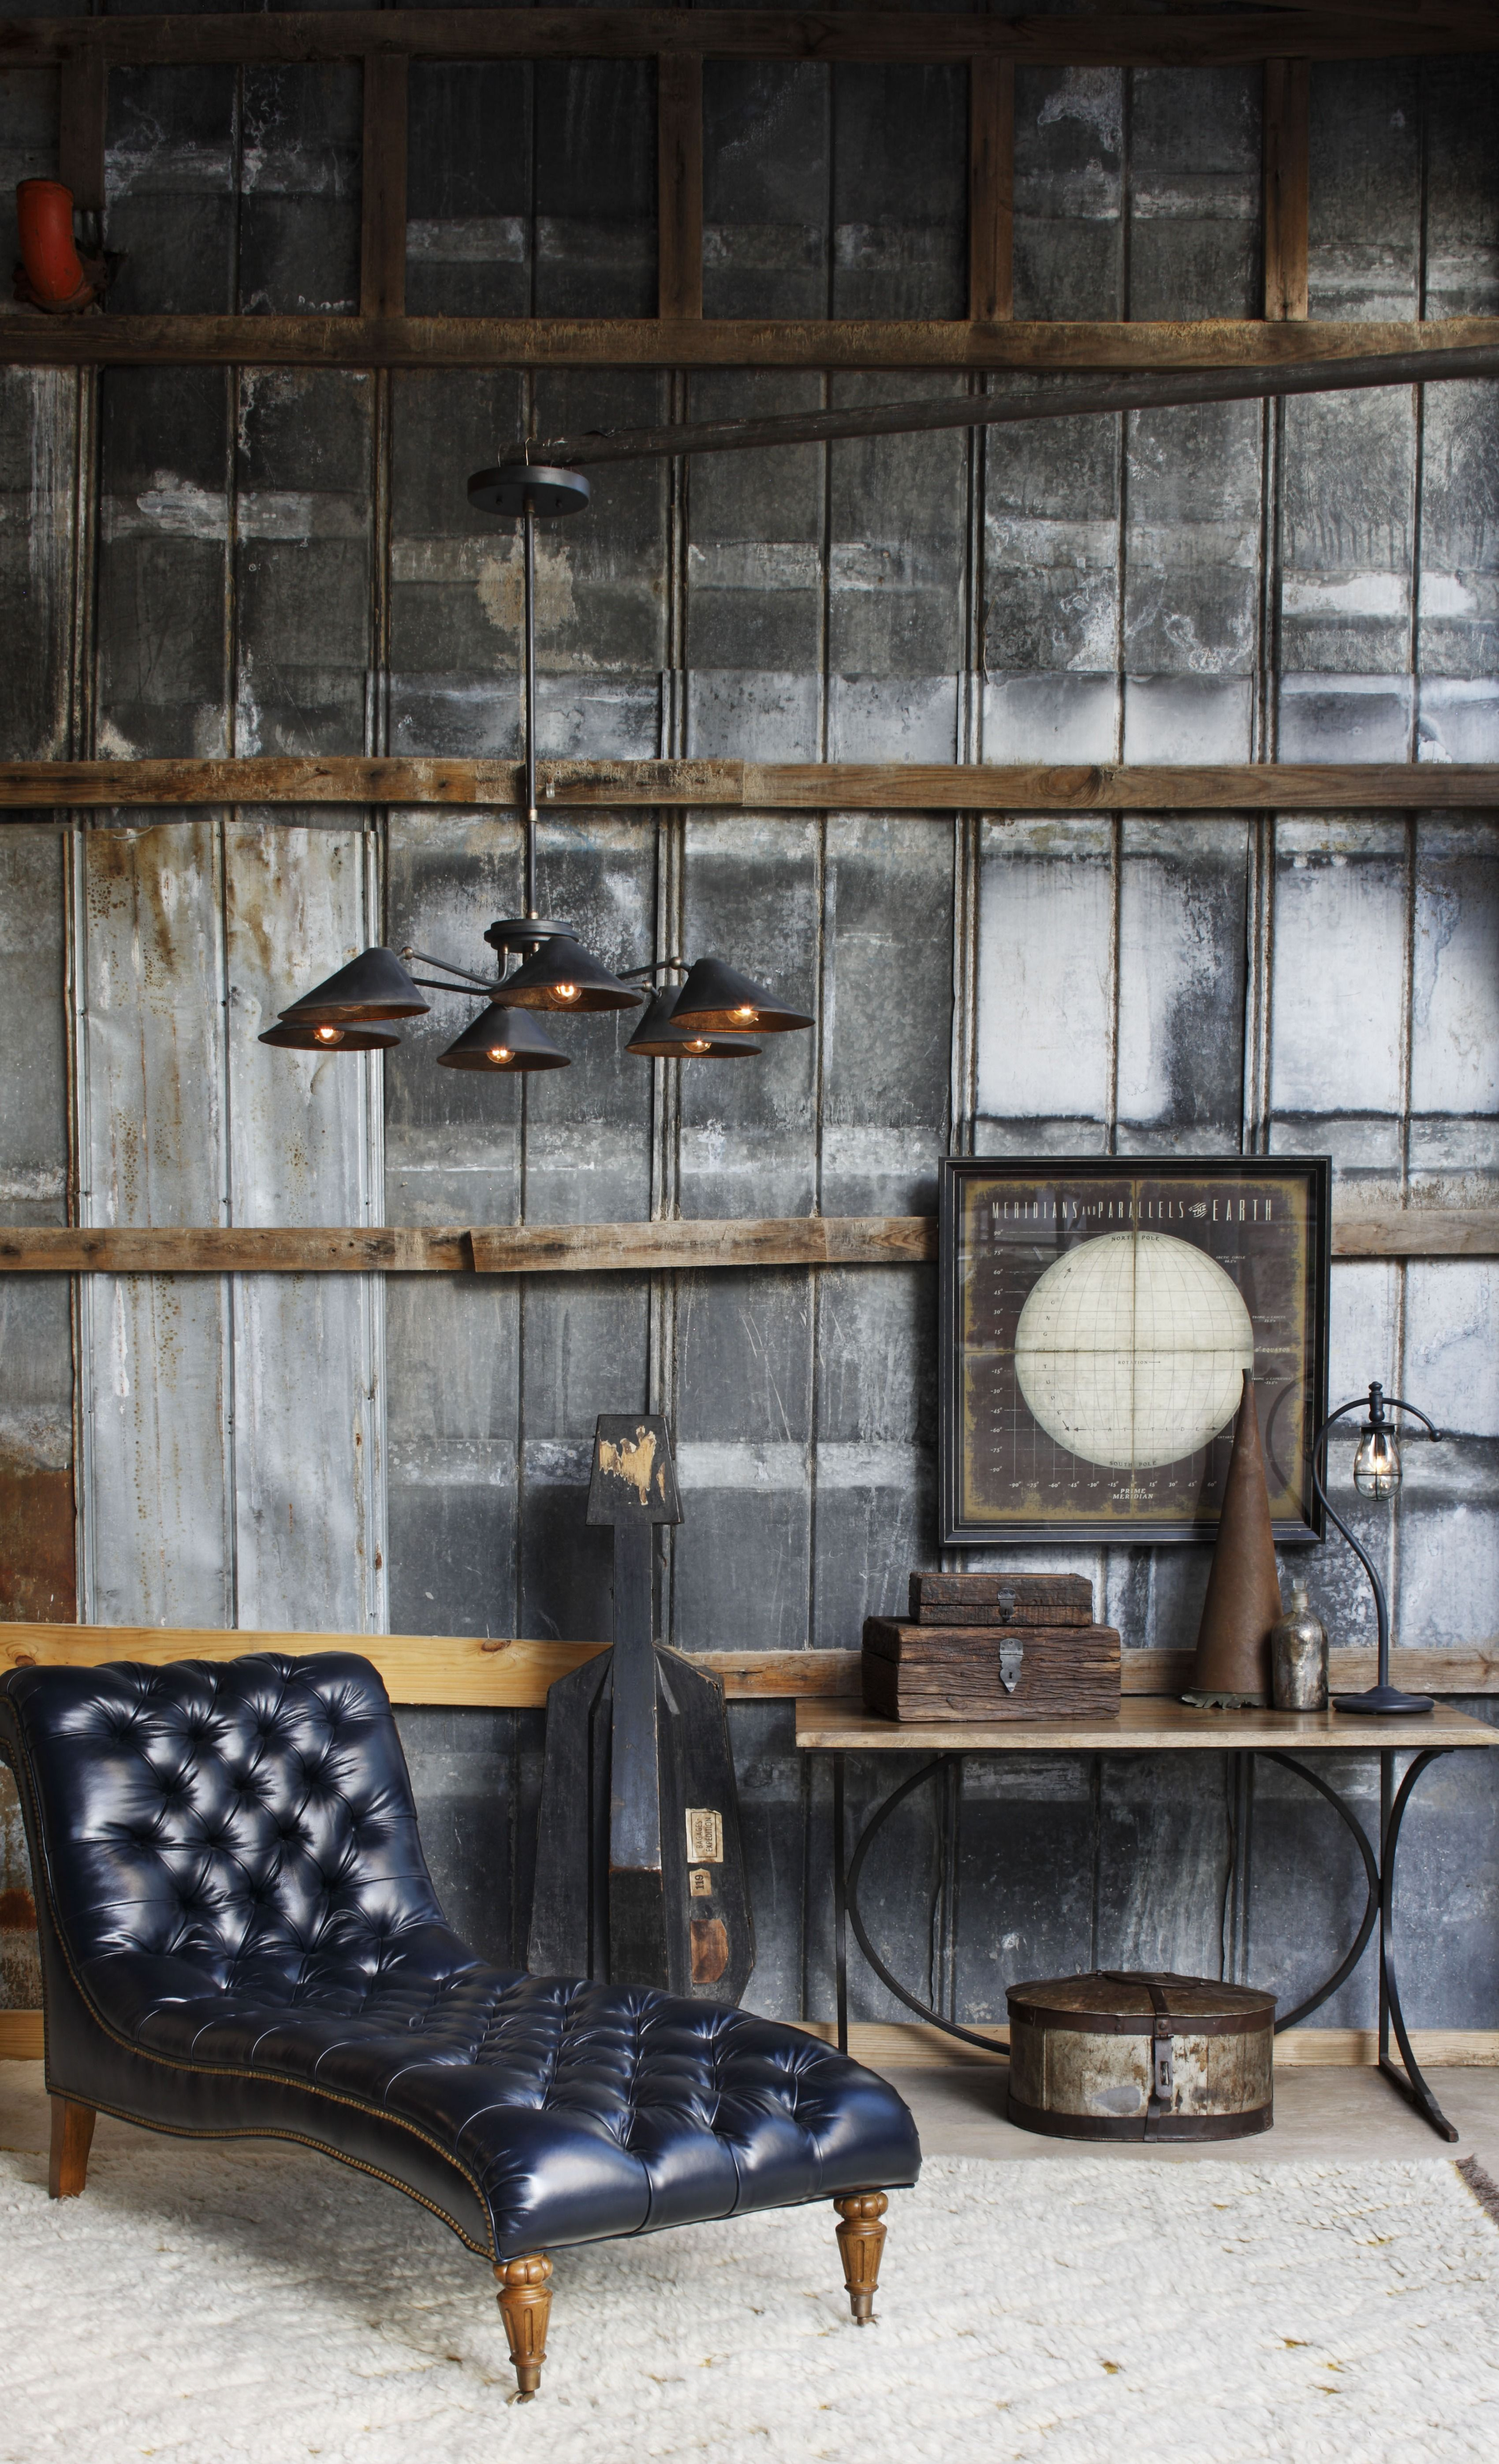 Fainlight Chandelier By Currey And Company 9308 Cc Rustic Industrial Living Room Industrial Livingroom Vintage Industrial Decor